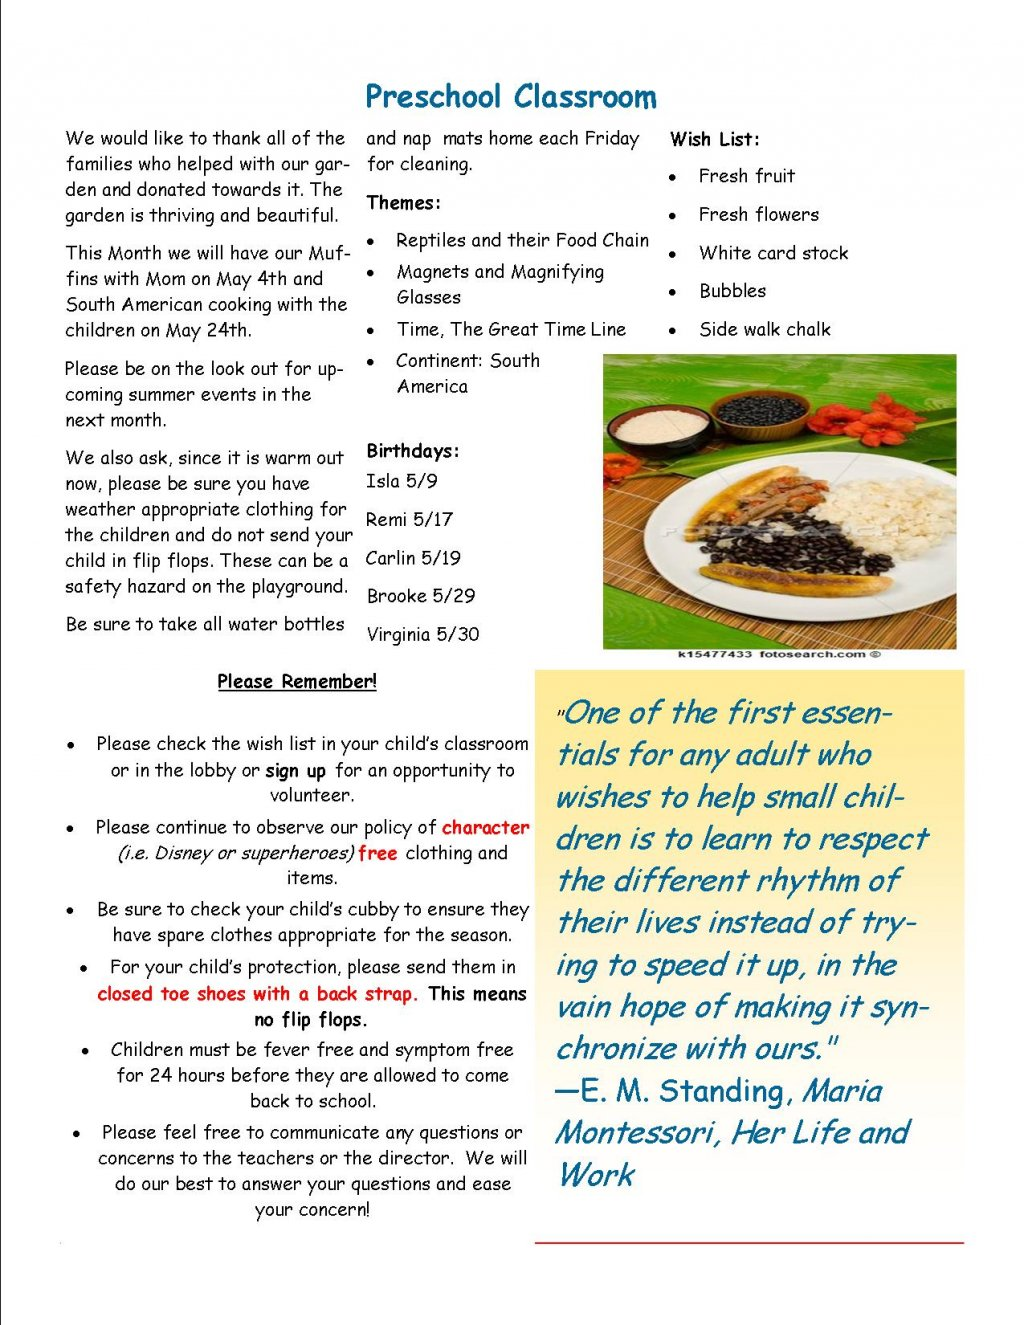 1002332-LF_Newsletter_MAY_2016_pg_3.w1024